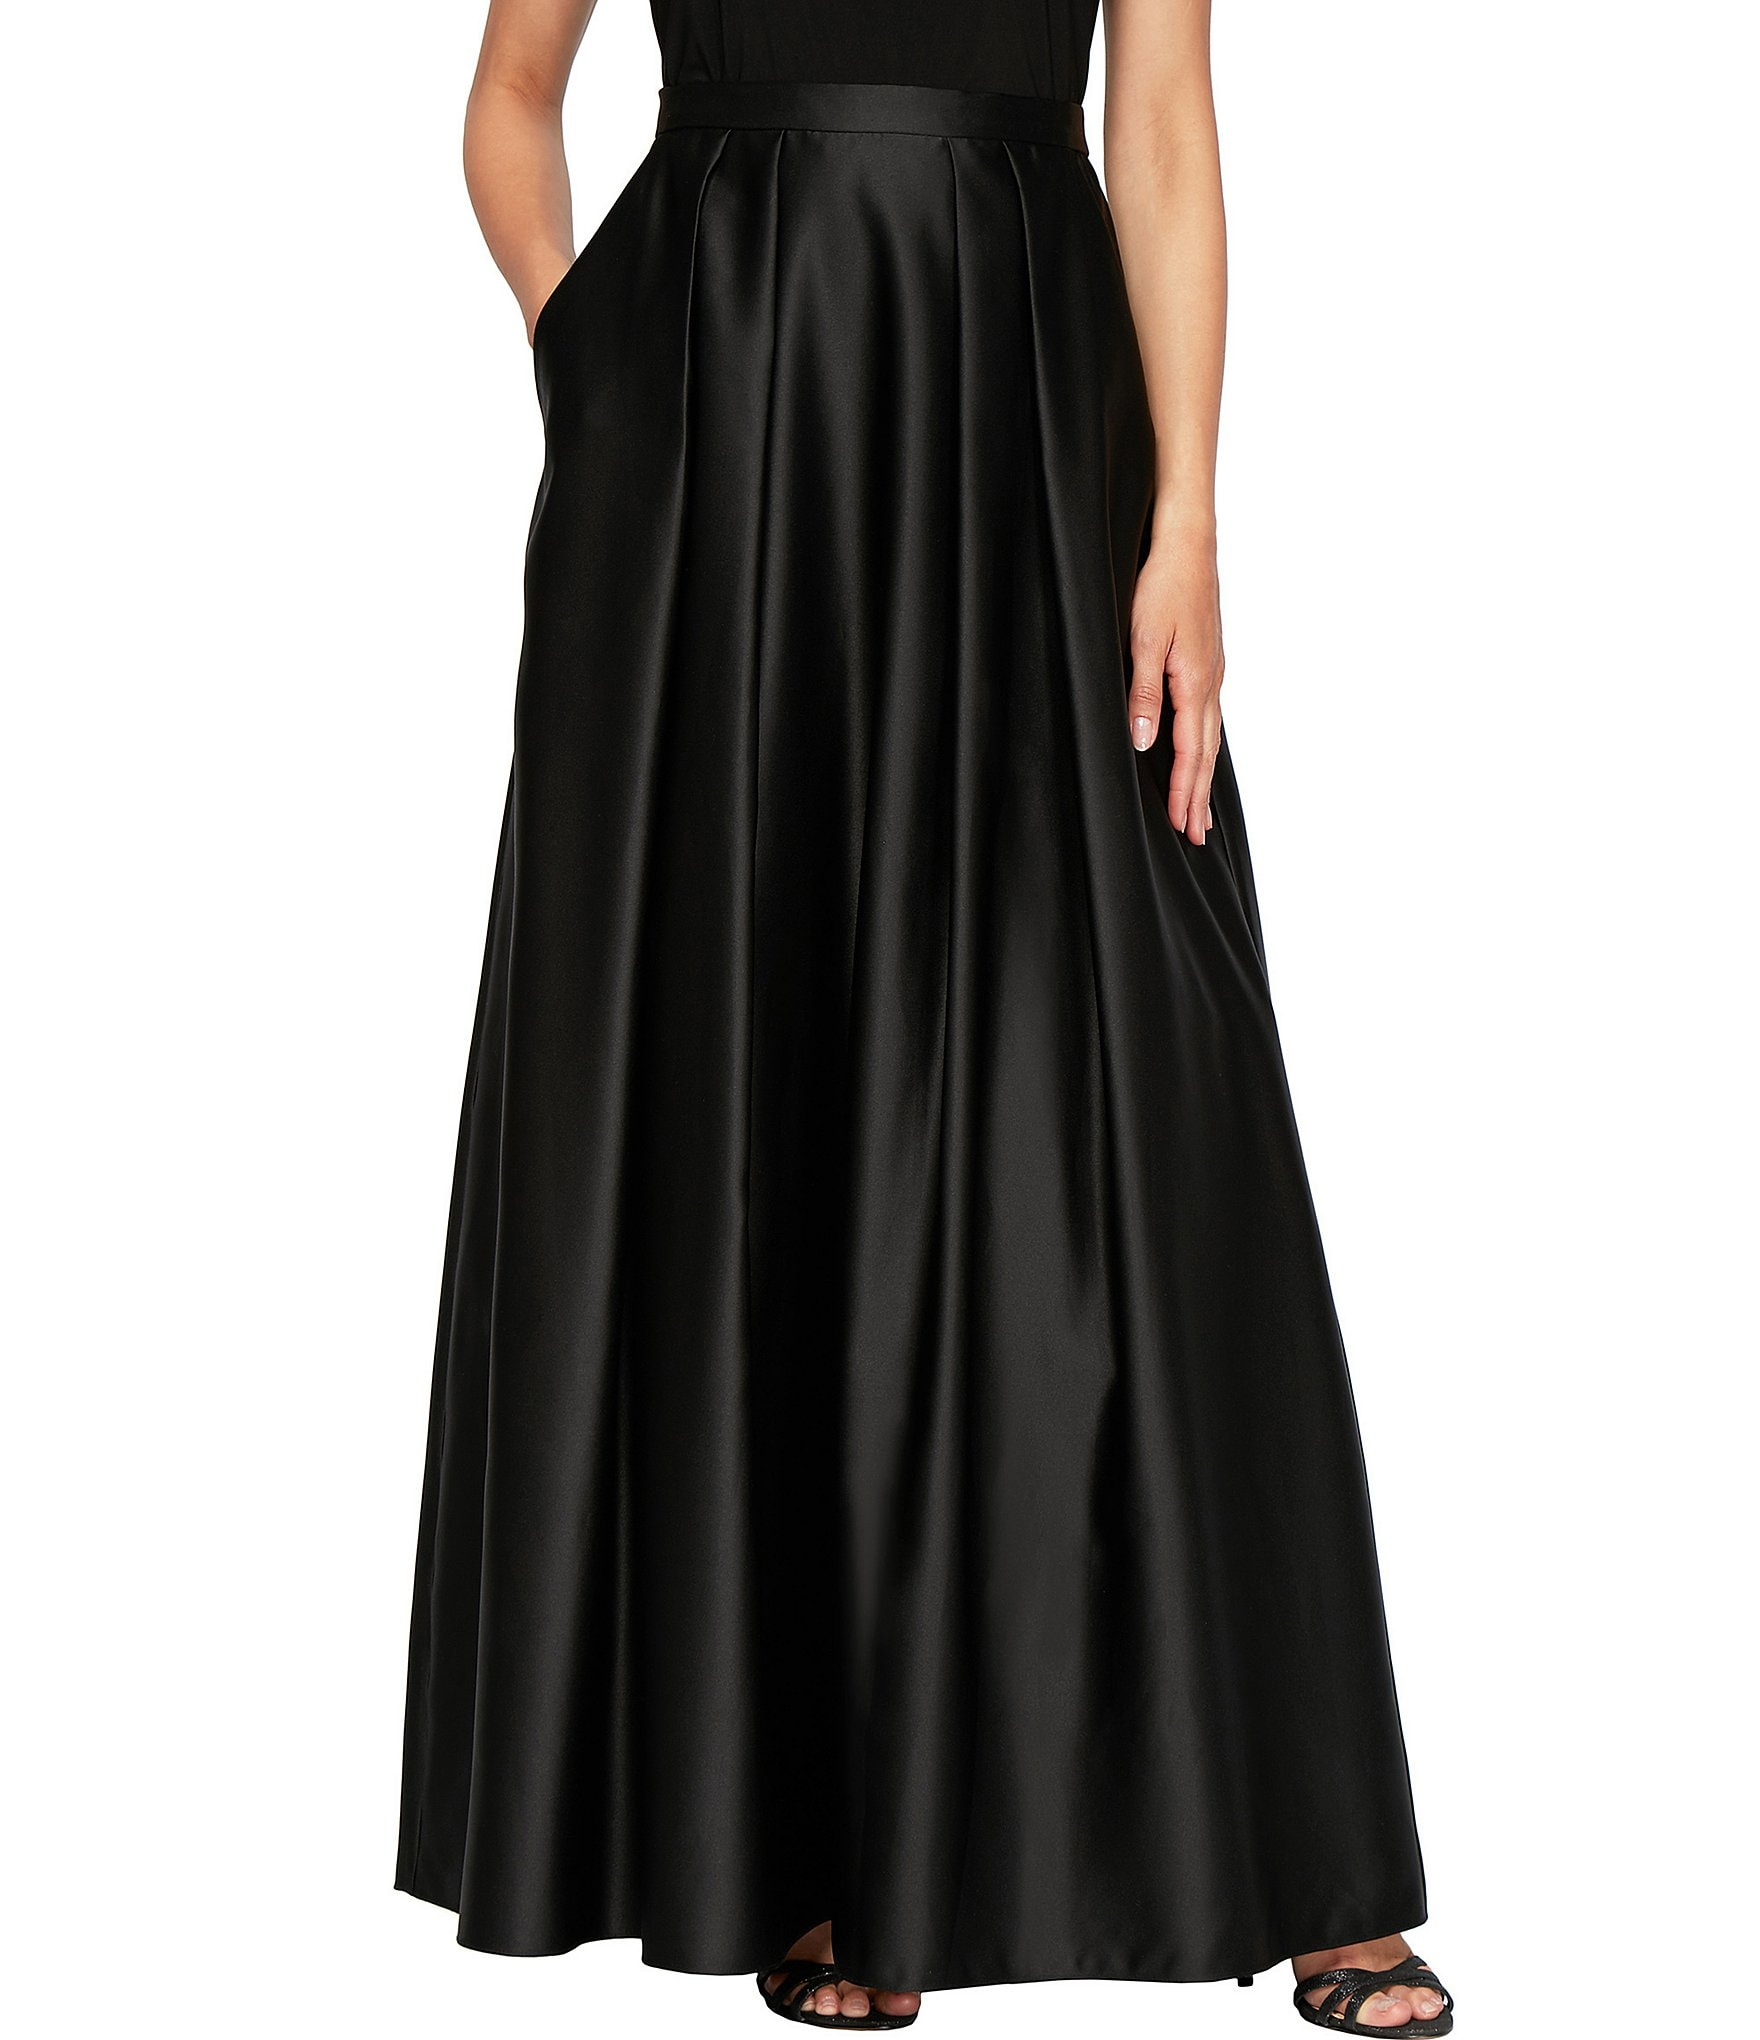 Alex Evenings Satin With Pocket Inverted Pleat Ball Gown Skirt Dillard S